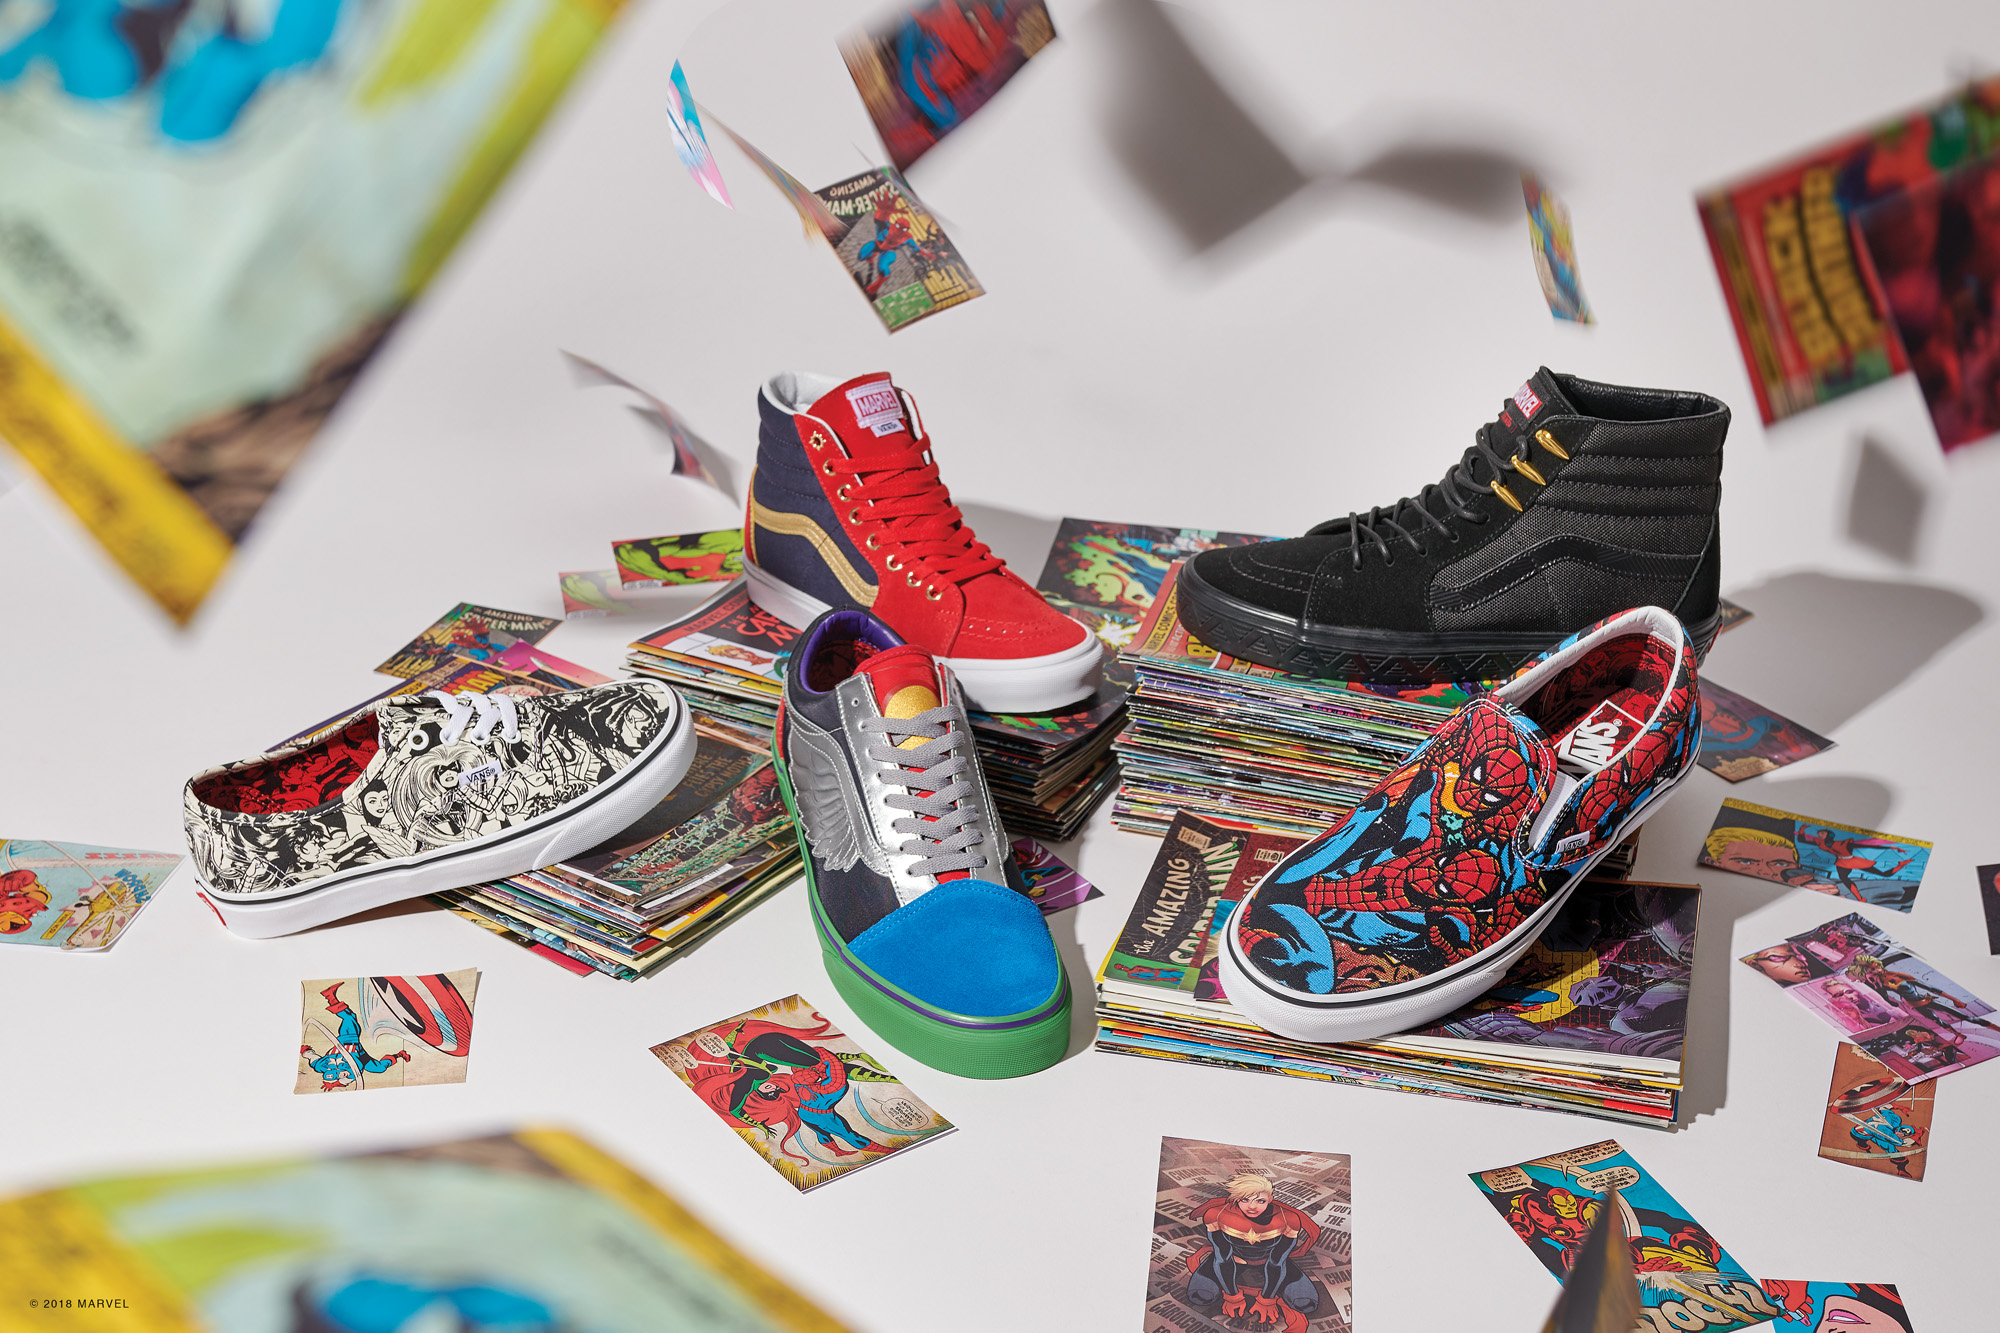 f1de4b9f58fe8f Be a Superhero with the Vans x Marvel Avengers Pack - The Drop Date